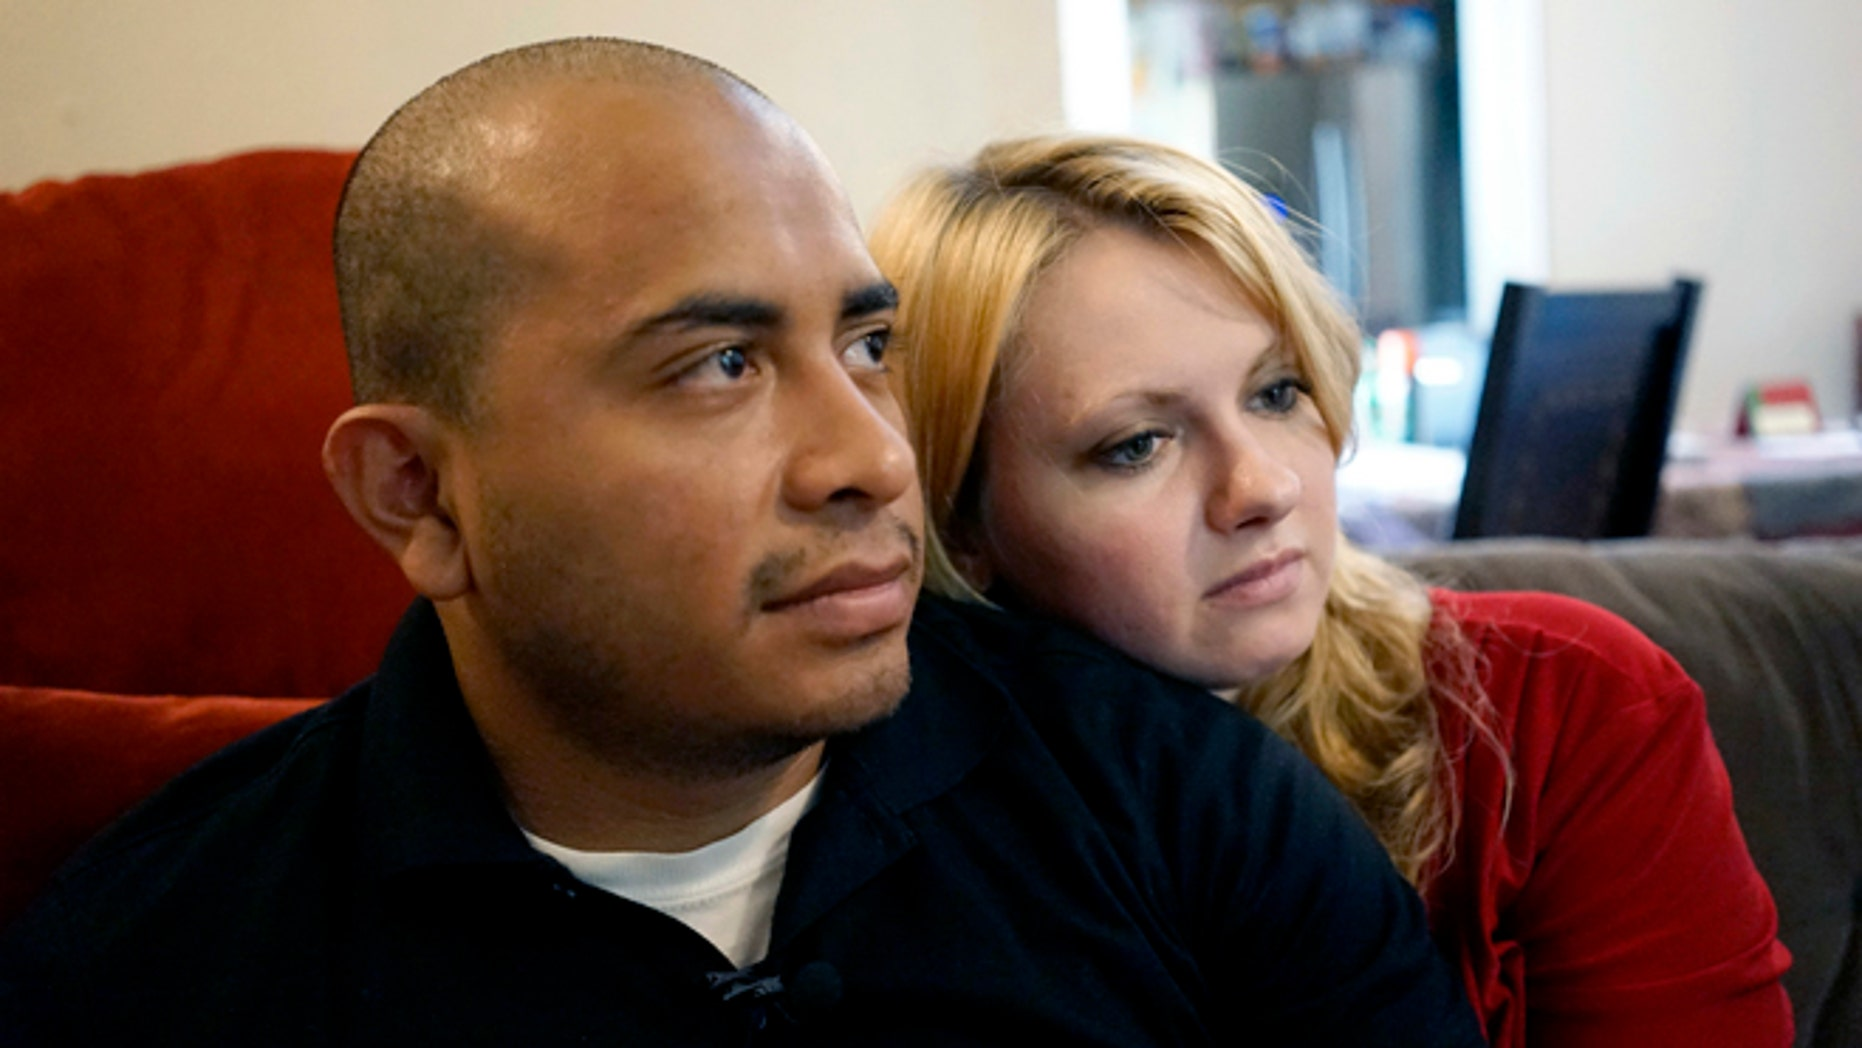 Officer Jorge Barrientos with his girlfriend, Bethany Knutson, Sunday, July 10, 2016, in Dallas.